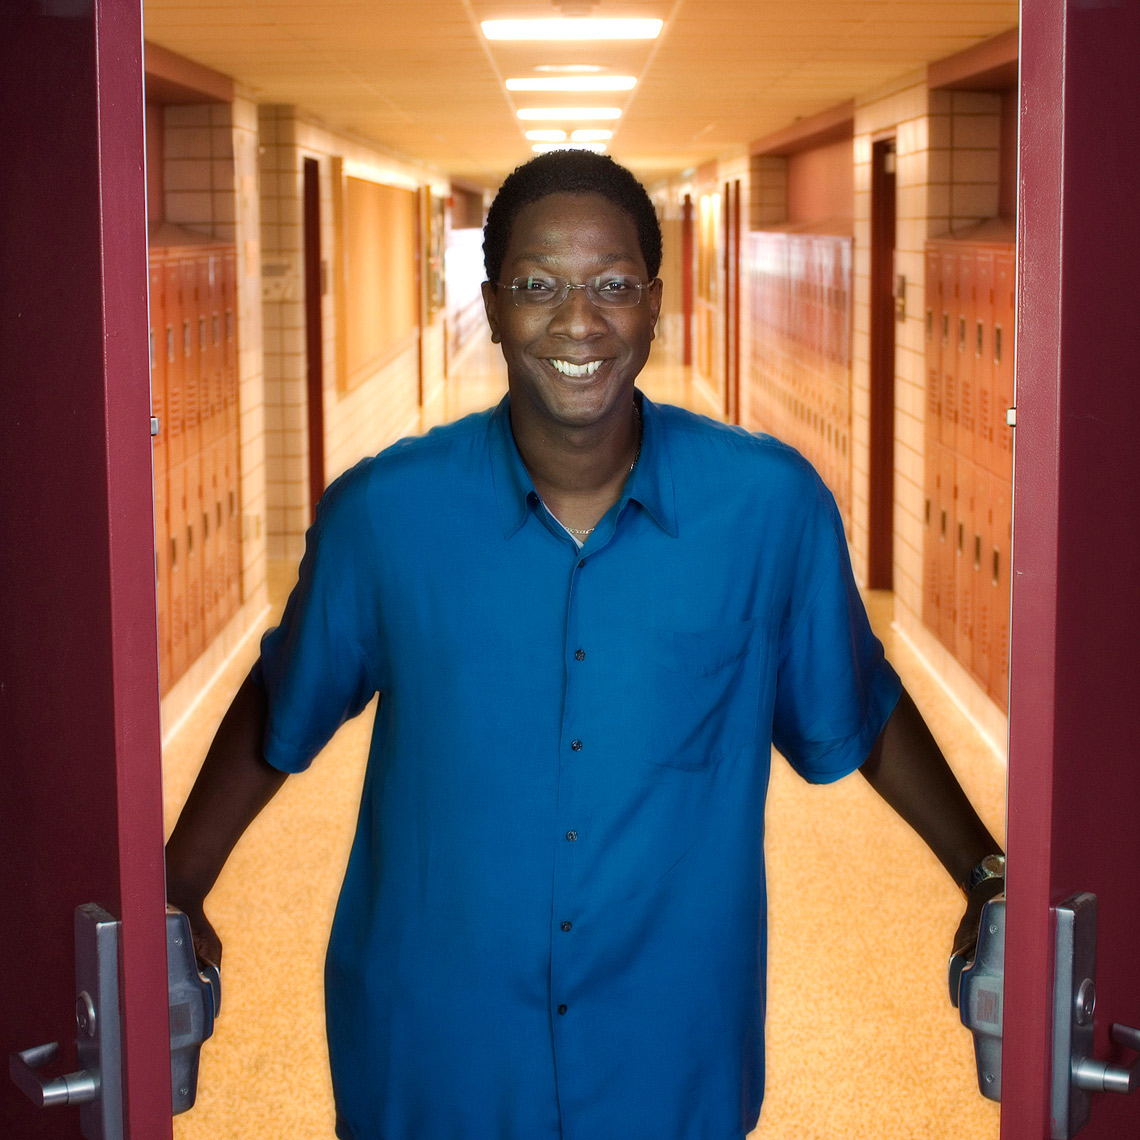 Anthony Parker, principal at Anthony Parker, the  Weston High School principal opening doors with hallway behind him